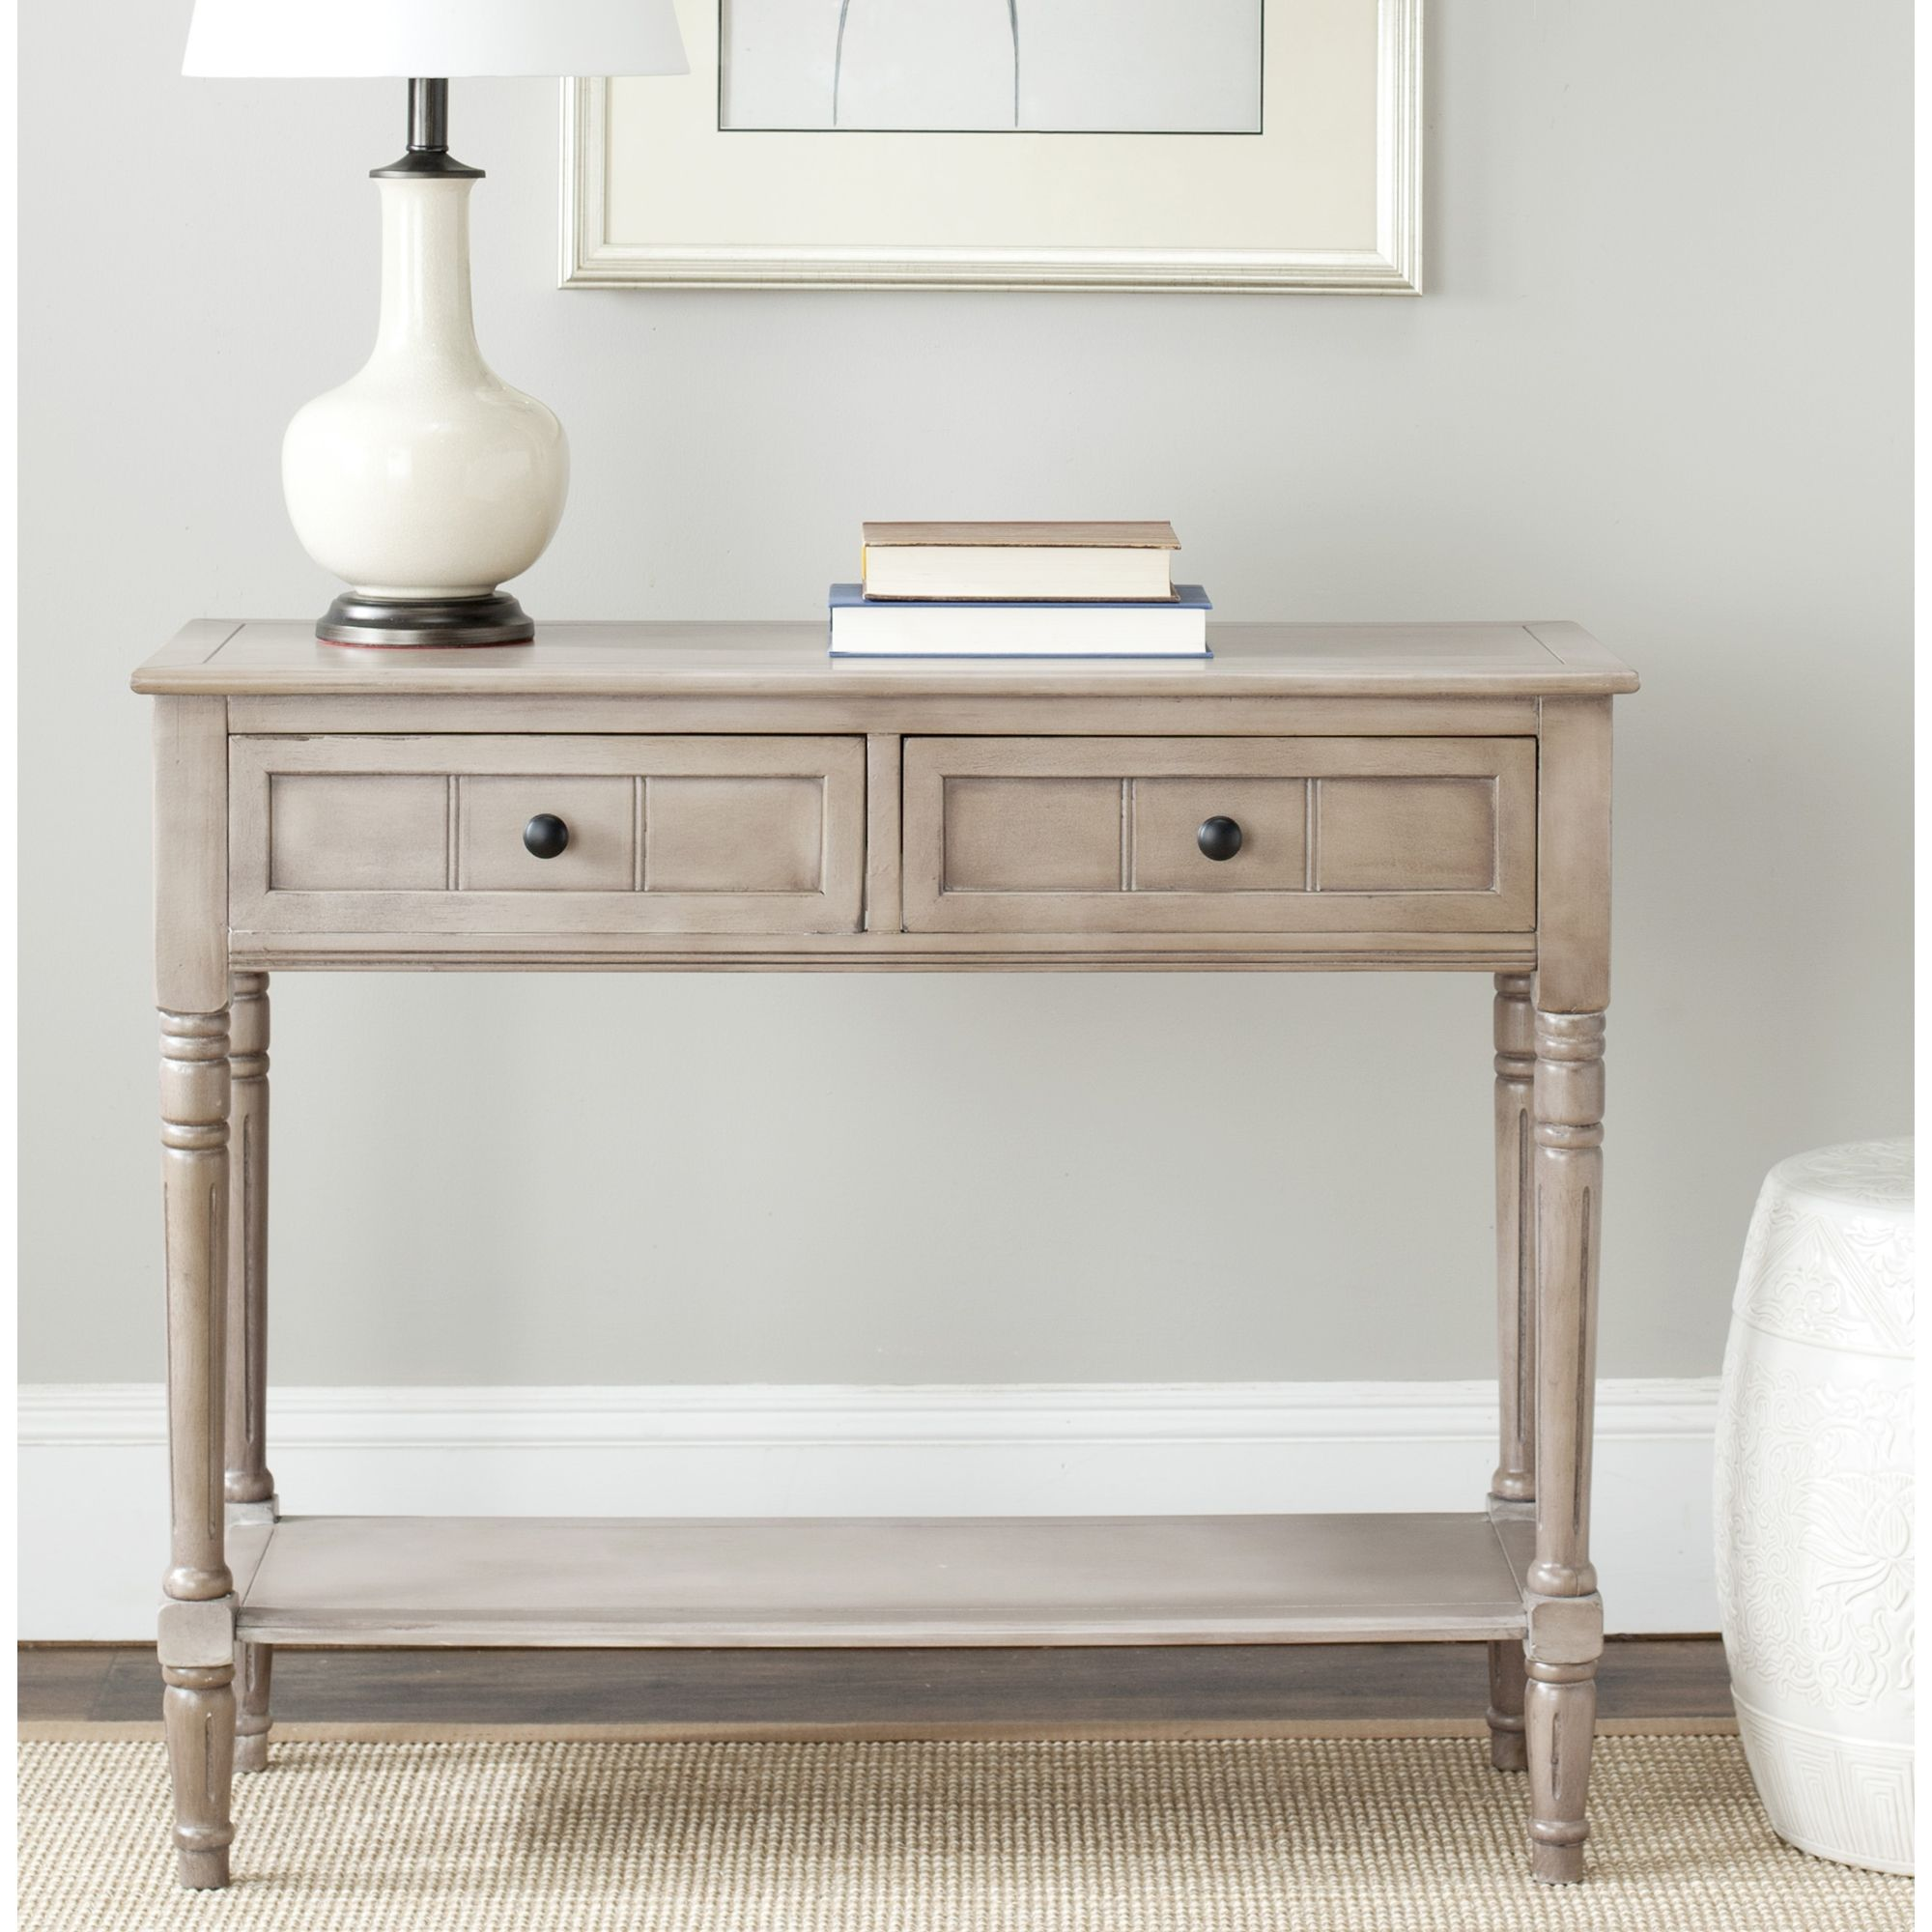 Online Shopping Bedding Furniture Electronics Jewelry Clothing More Gray Console Table Wood Console Table Contemporary Console